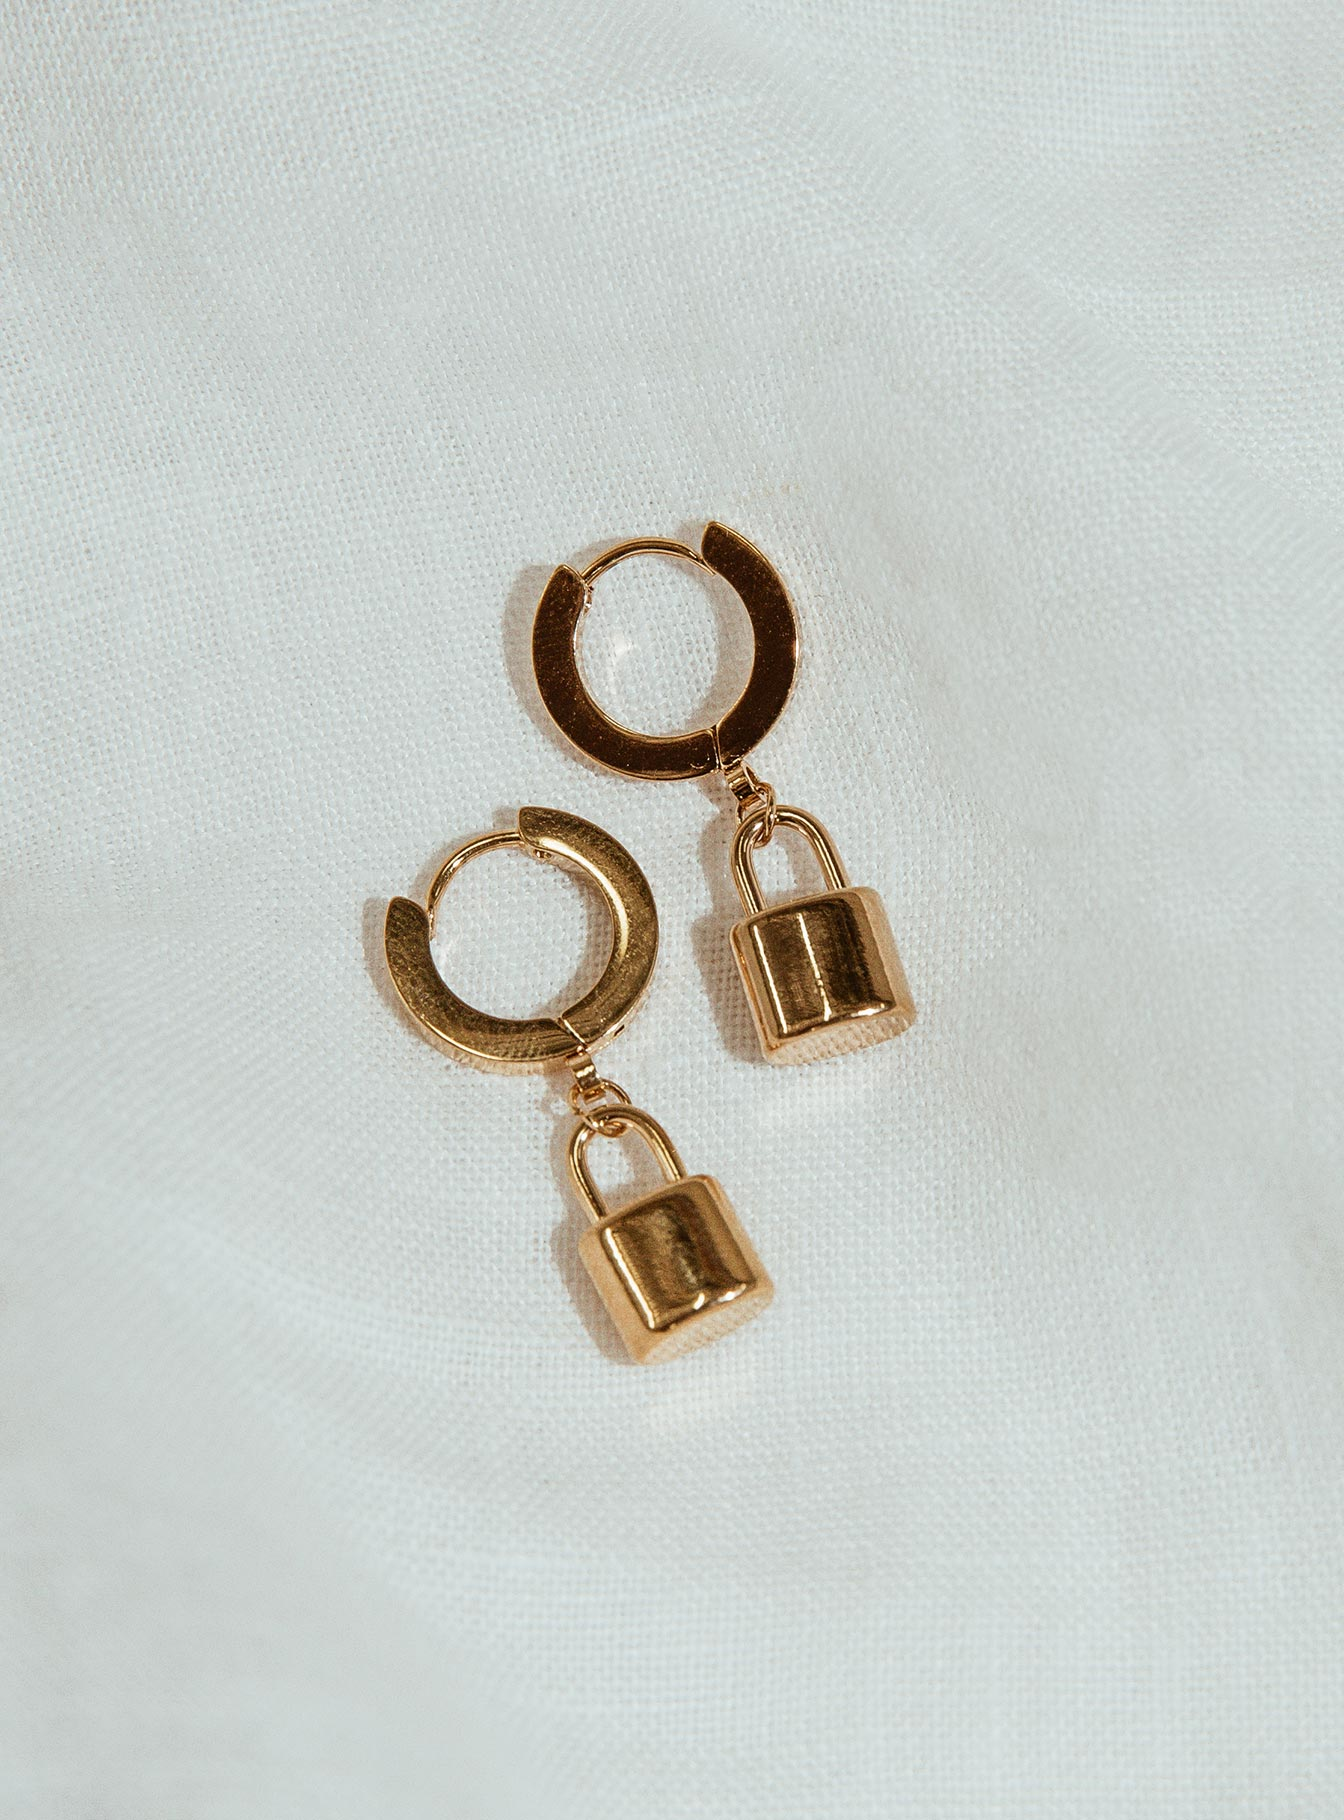 Penny Padlock Earrings